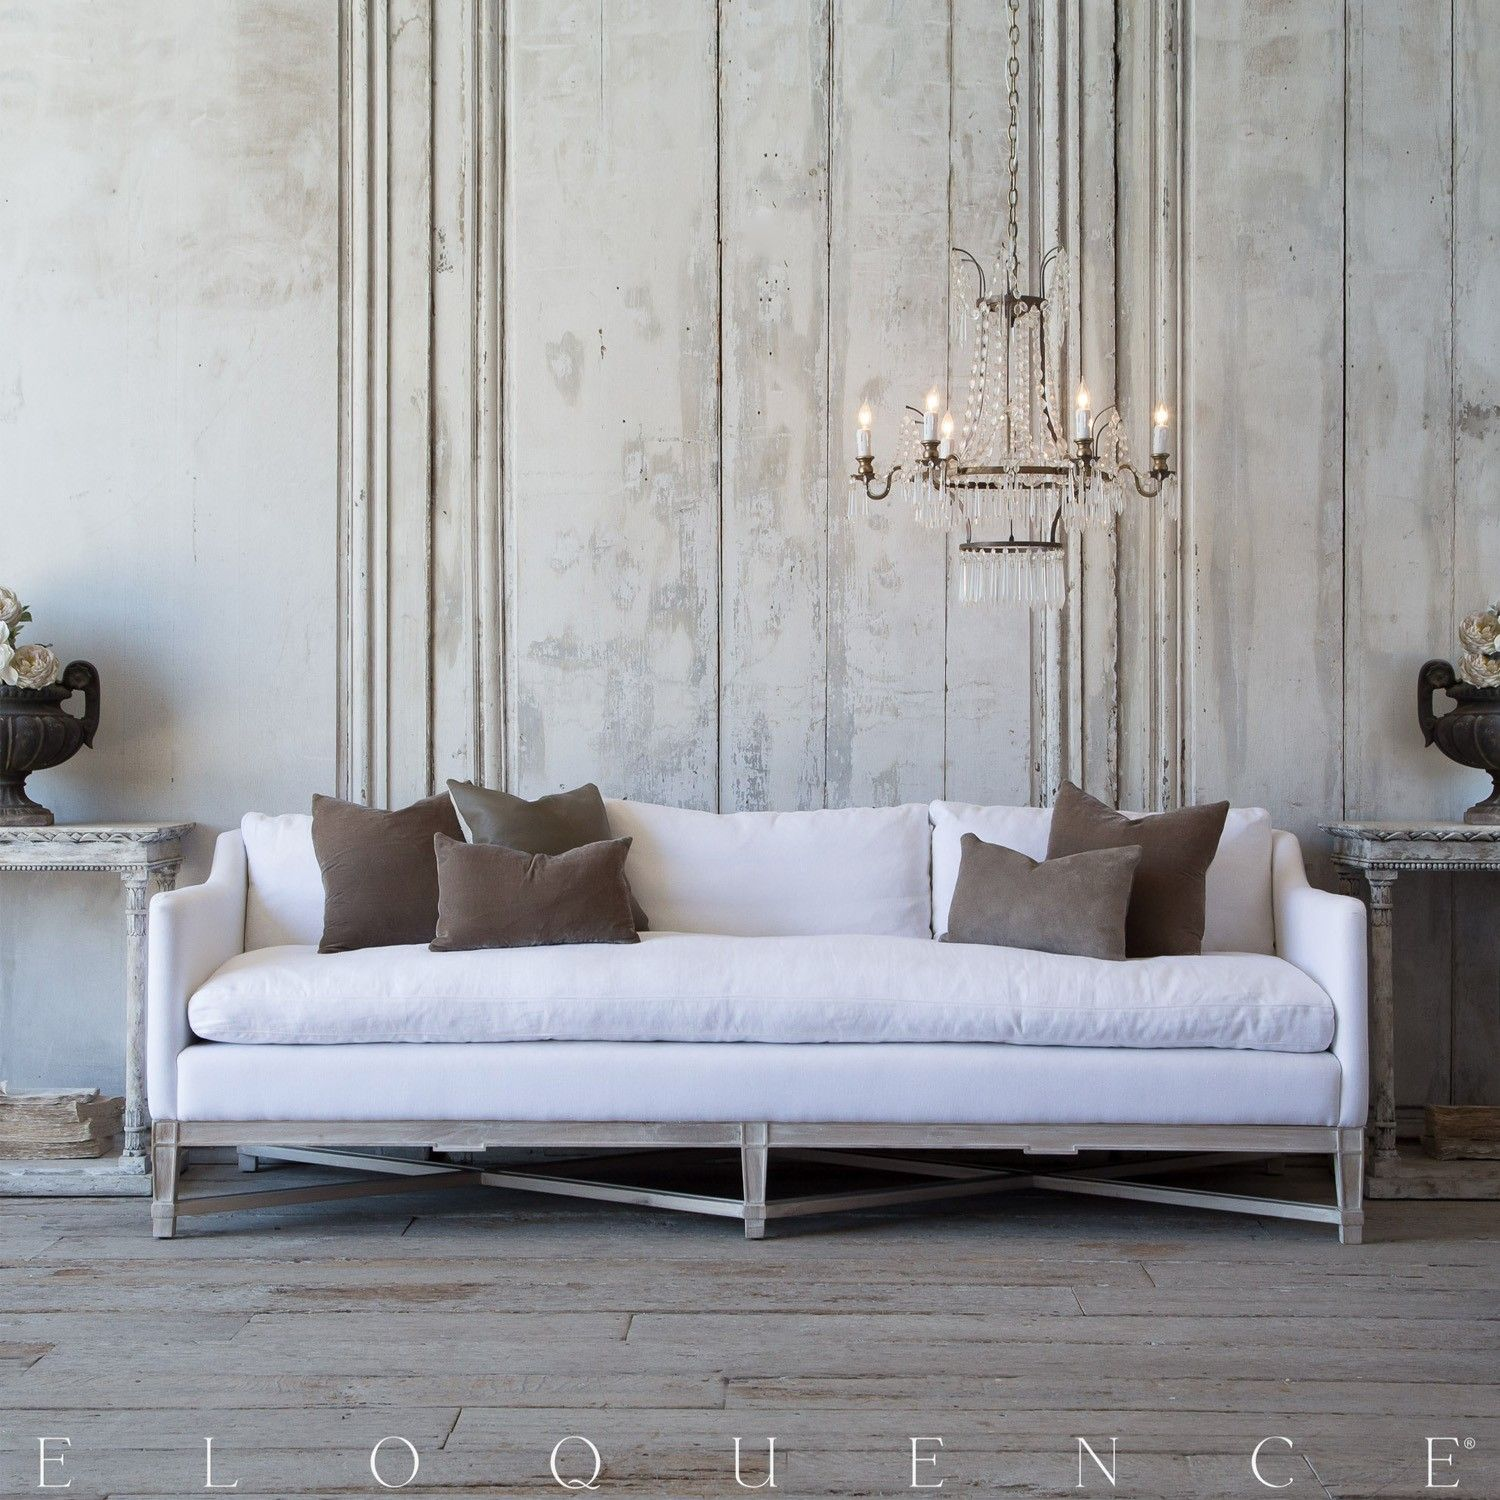 This Scandinavian Sofa Is Eloquencea S Homage To Danish Modern Inspired By The Great Mid Century Danish Designers This Th Scandinavian Sofas Sofa Home Decor